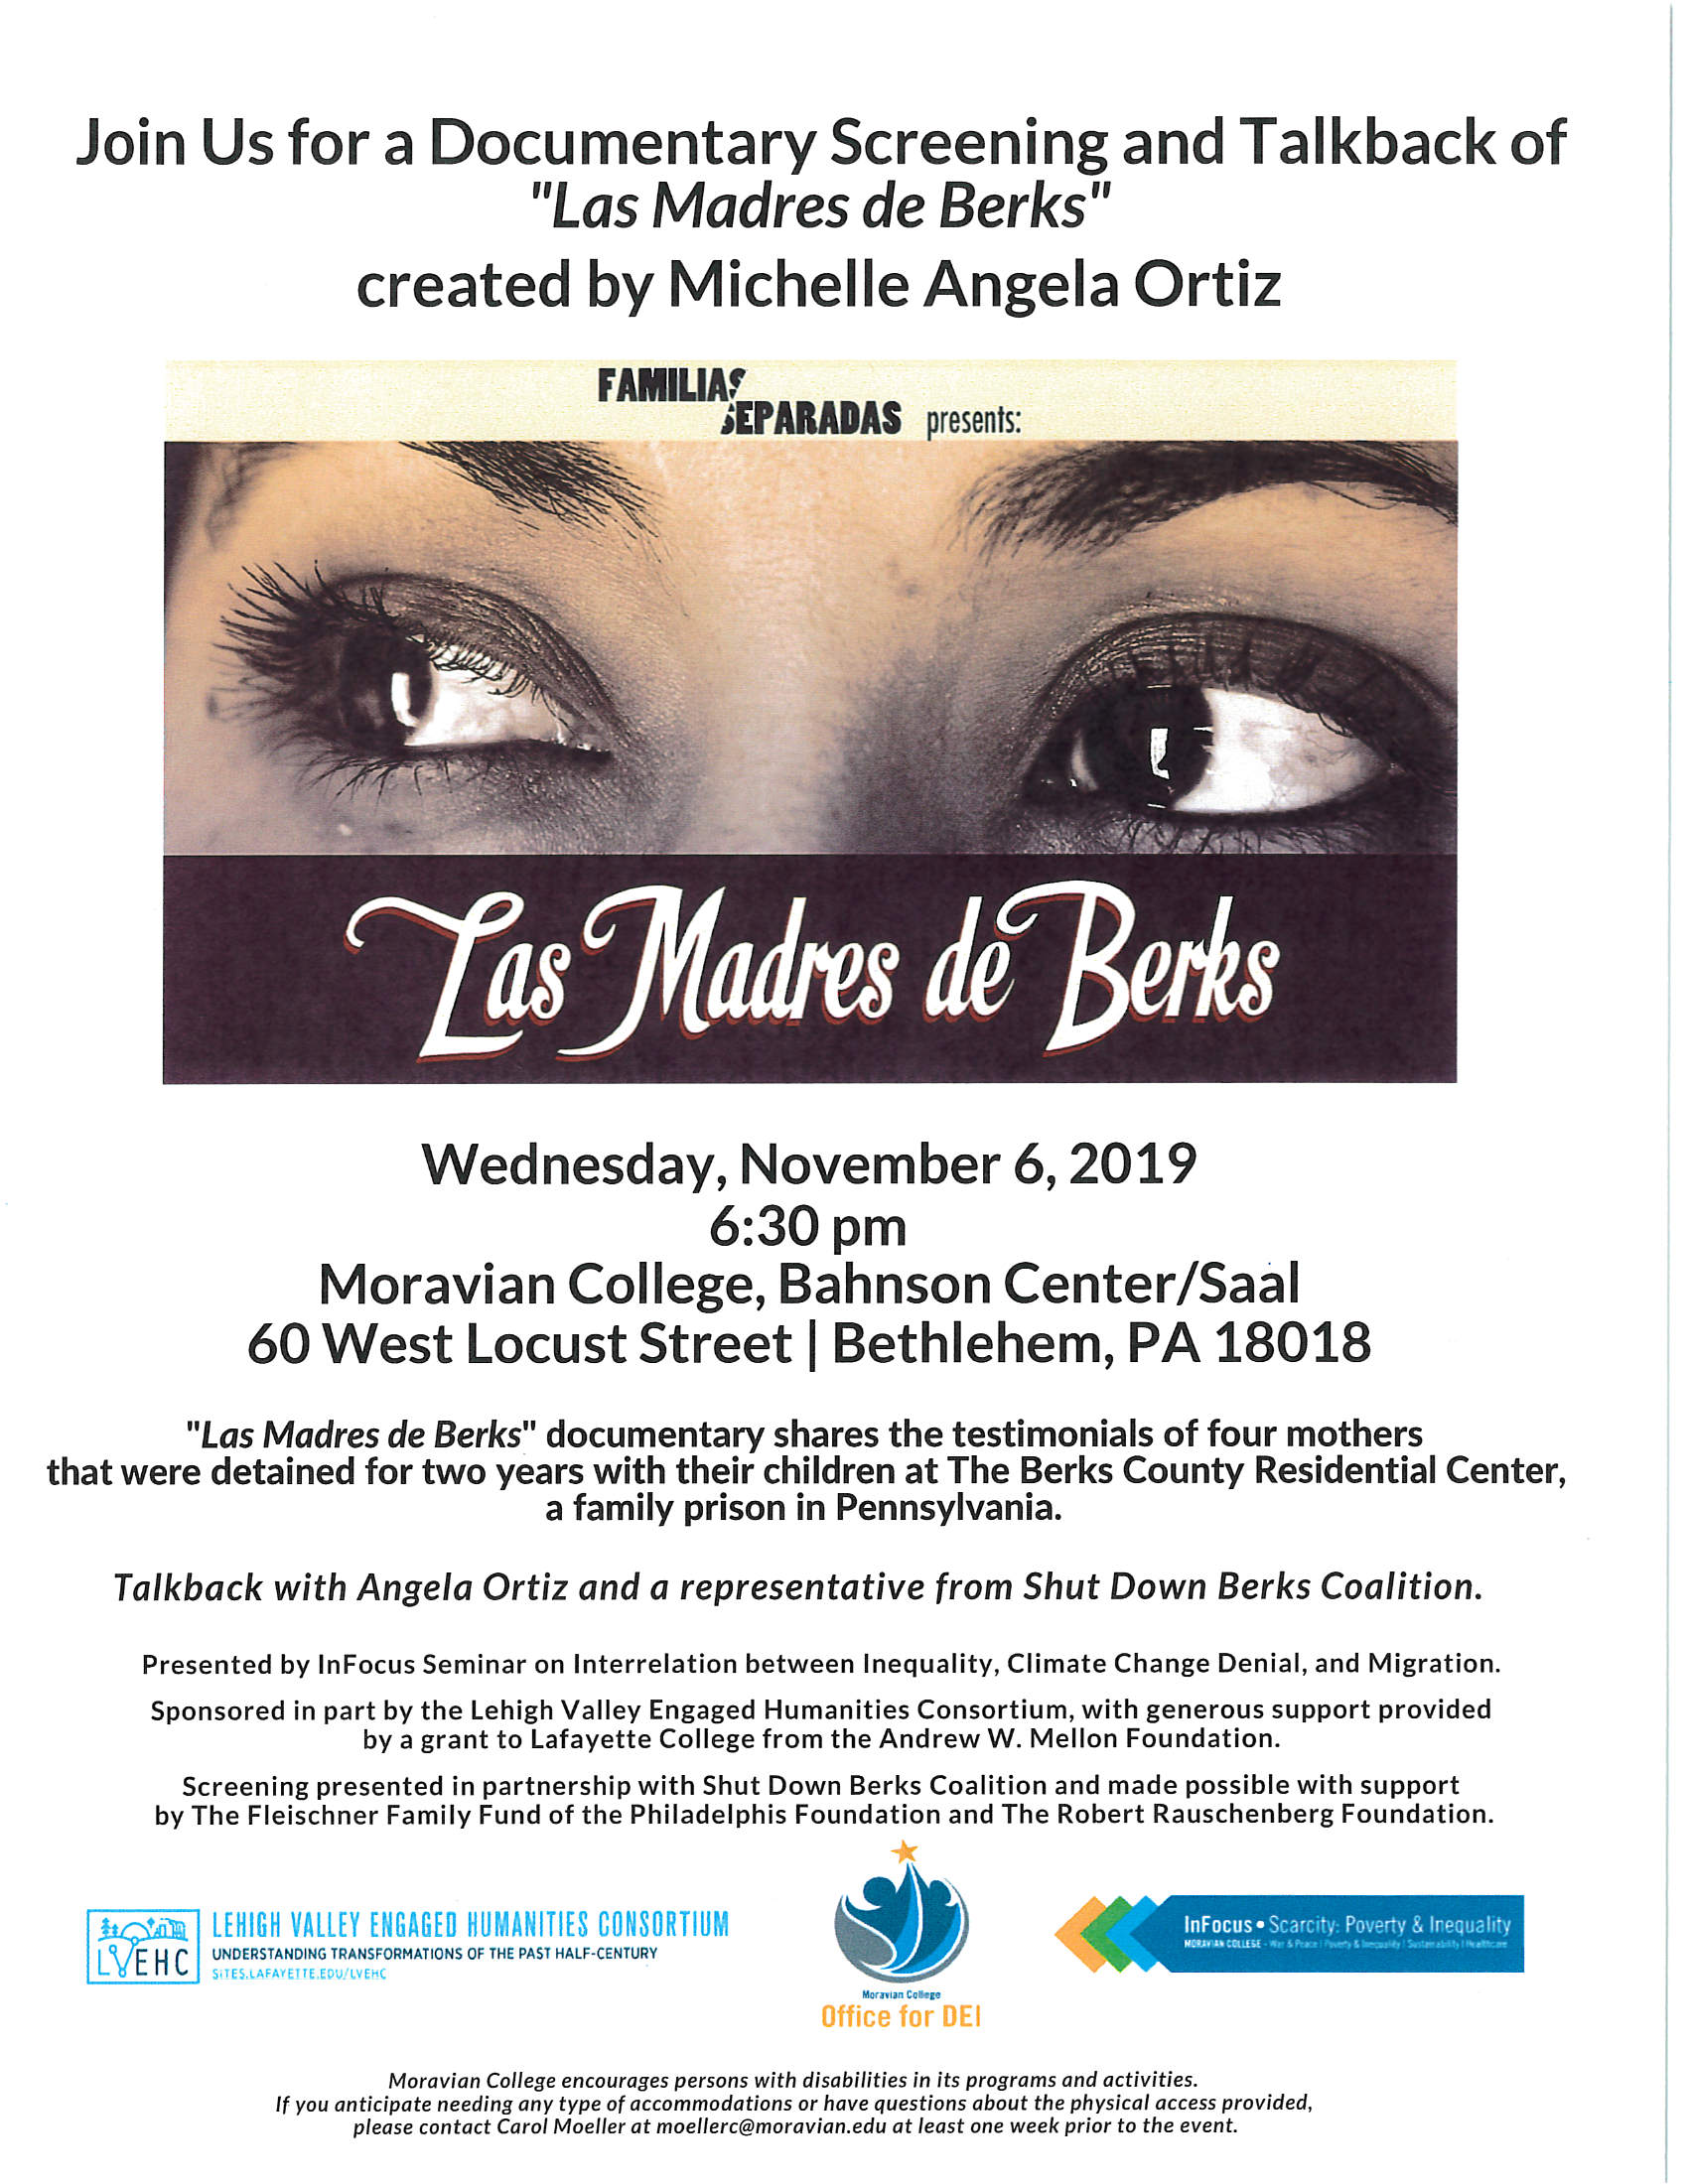 """​​Wednesday, November 6, 2019  6:30 pm  Moravian College, Bahnsen Center/Saal  60 West Locust Street I Bethlehem, PA 18018  ""Las Madres de Berks"" documentary shares the testimonials of four mothers  that were detained for two years with their children at The Berks County Residential Center, a family prison in Pennsylvania.  Talkback with Angela Ortiz and a representative from Shut Down Berks Coalition. Presented by lnFocus Seminar on Interrelation between Inequality, Climate Change Denial, and Migration.  Sponsored in part by the Lehigh Valley Engaged Humanities Consortium, with generous support provided by a grant to Lafayette College from the Andrew W. Mellon Foundation.  Screening presented in partnership with Shut Down Berks Coalition and made possible with support  by The Fleischner Family Fund of the Philadelphis Foundation and The Robert Rauschenberg Foundation. """